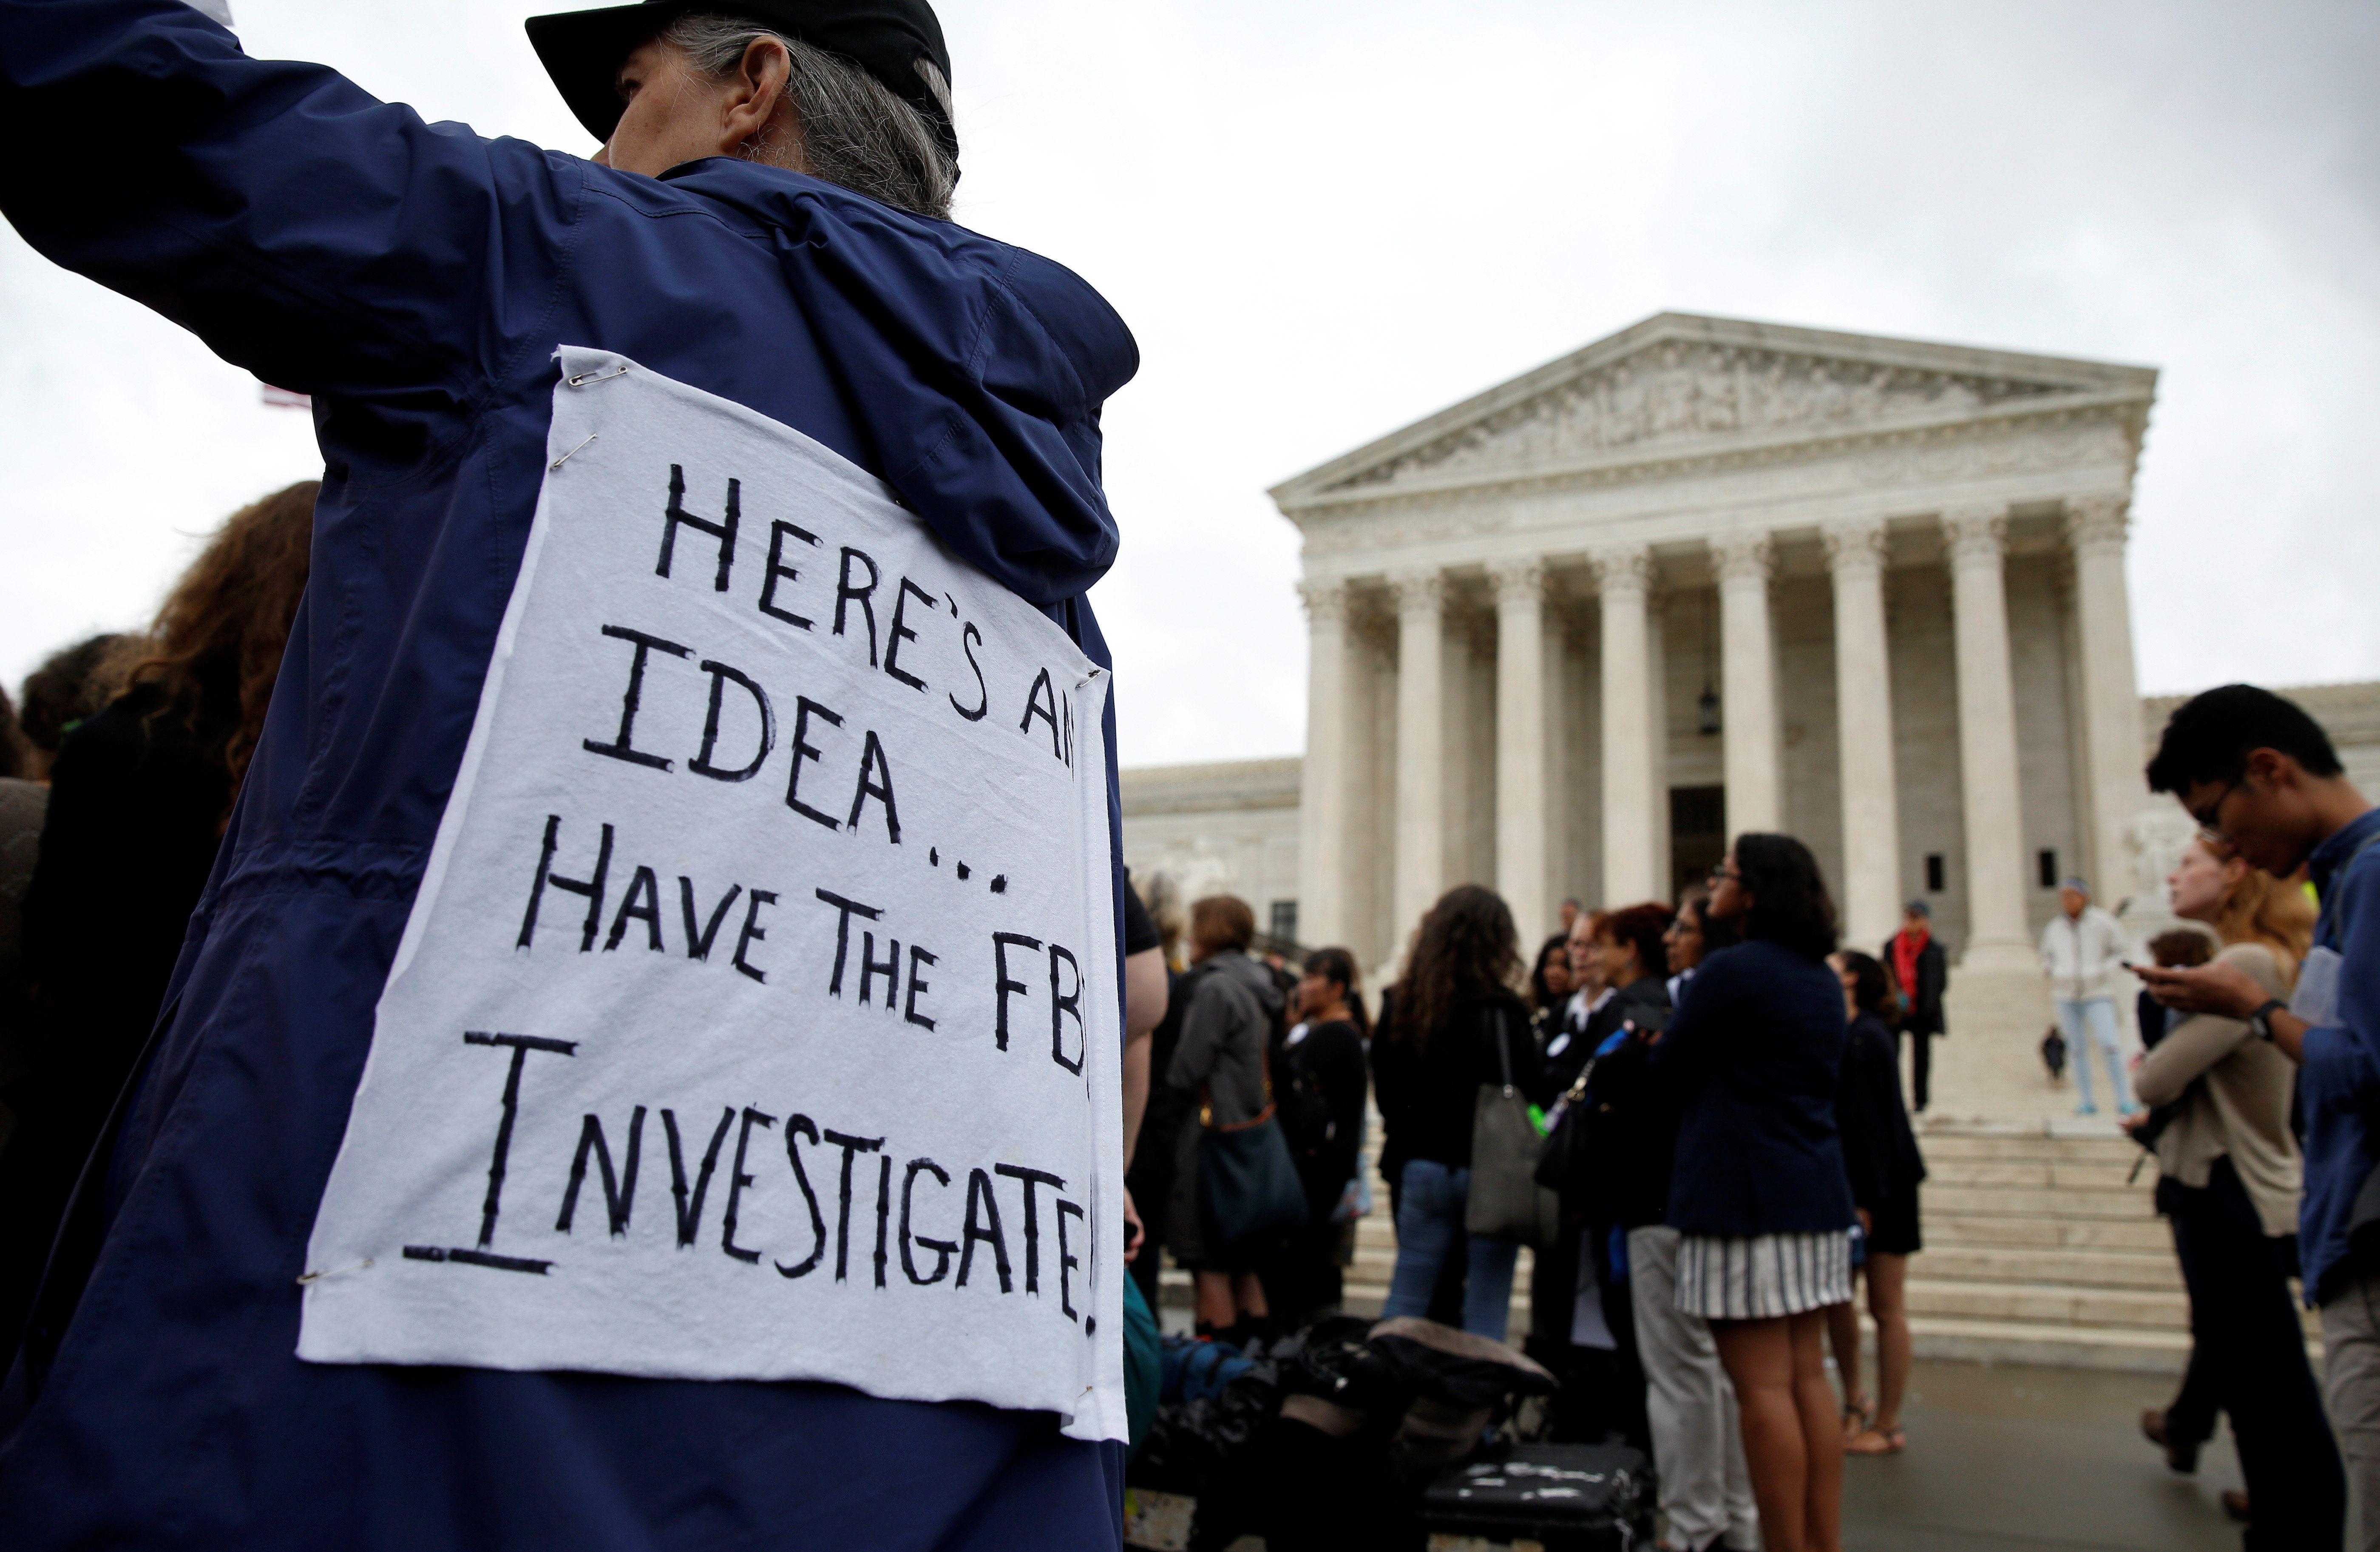 Demonstrators protest against Supreme Court nominee Brett Kavanaugh in front of the Supreme Court building in Washington on M